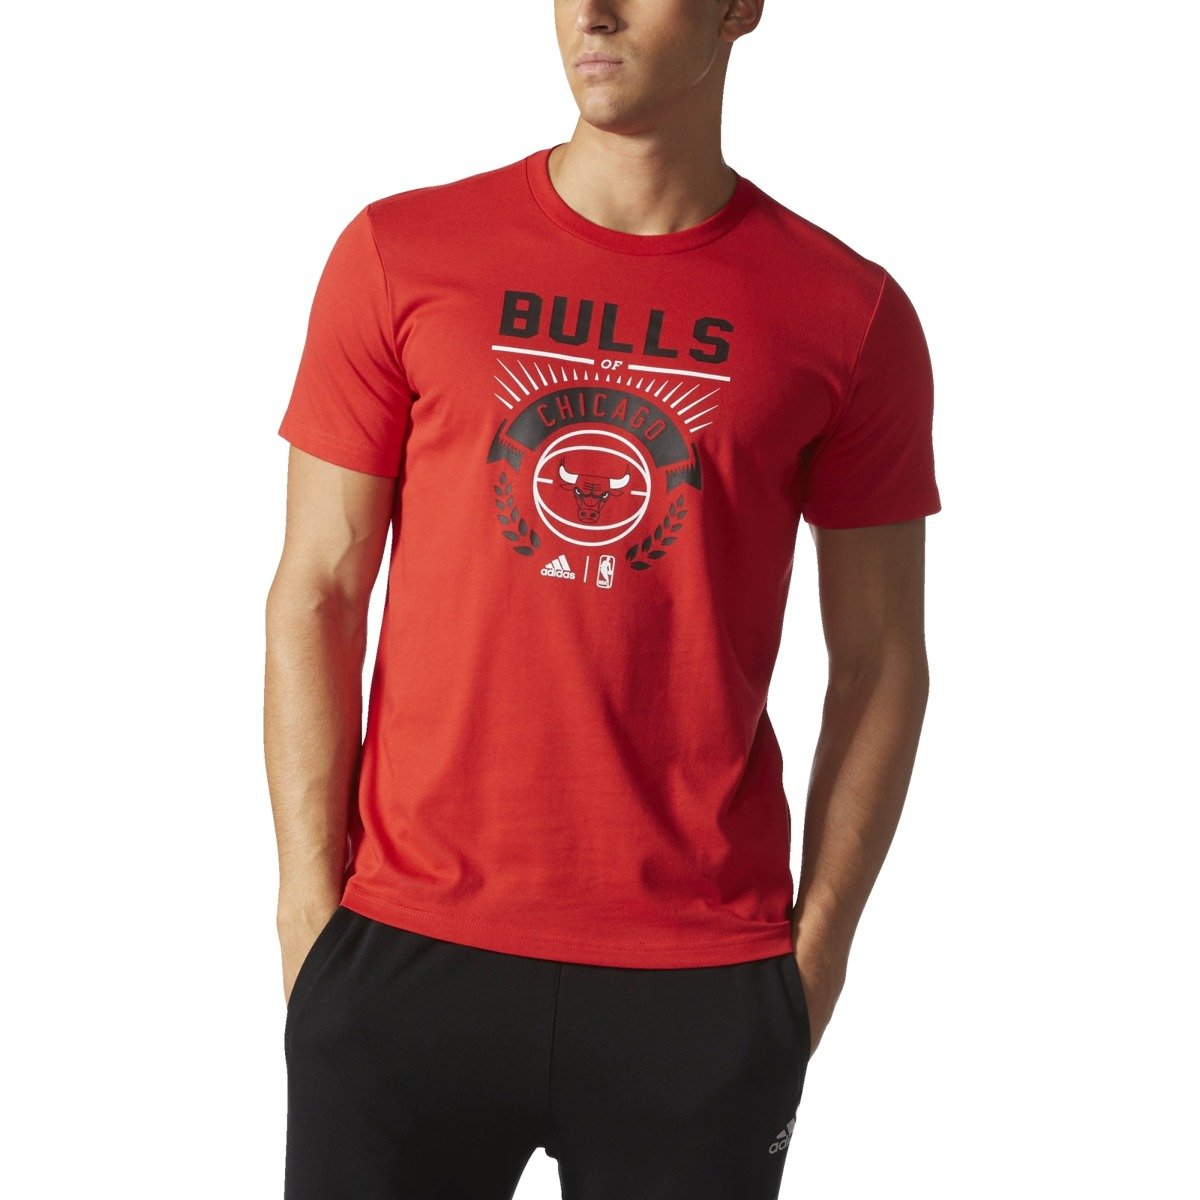 adidas chicago bulls t shirt s96778 basketball clothing casual wear t shirts sklep. Black Bedroom Furniture Sets. Home Design Ideas